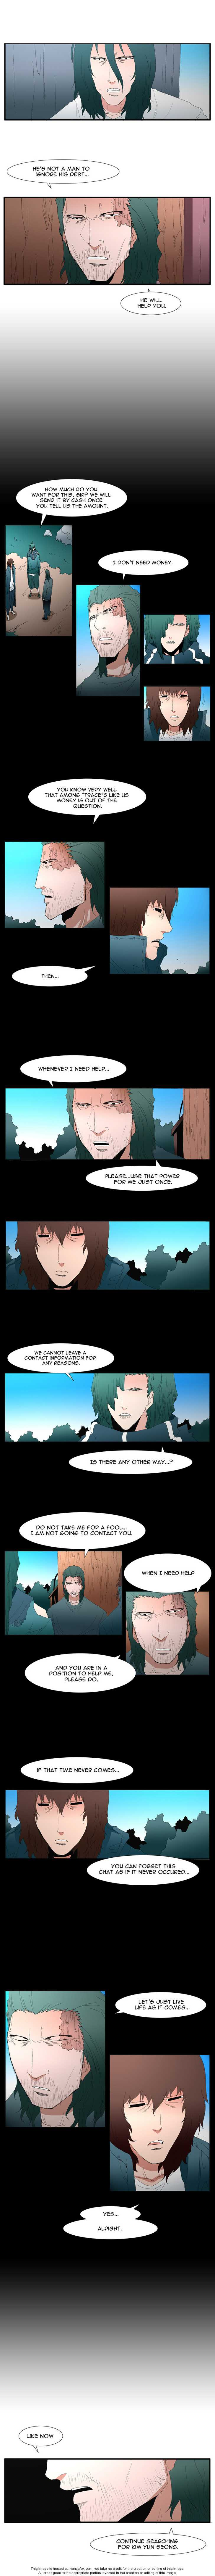 Trace 22 Page 2